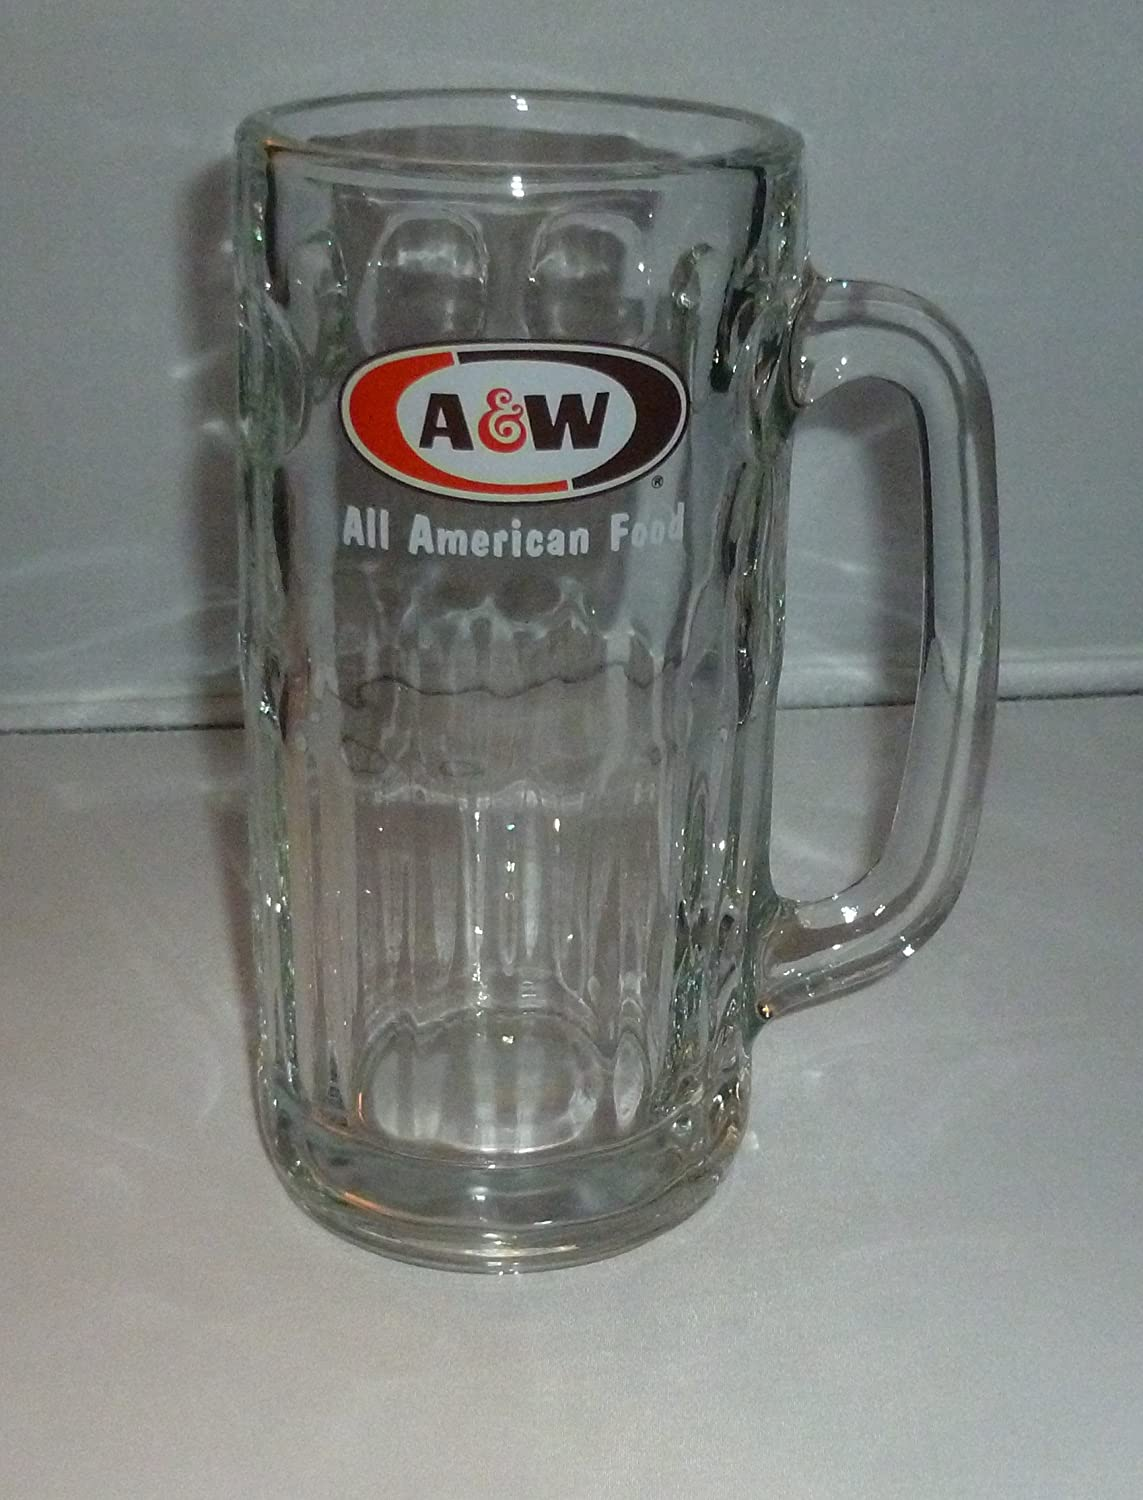 A&W Root Beer All American Food Glass Mug